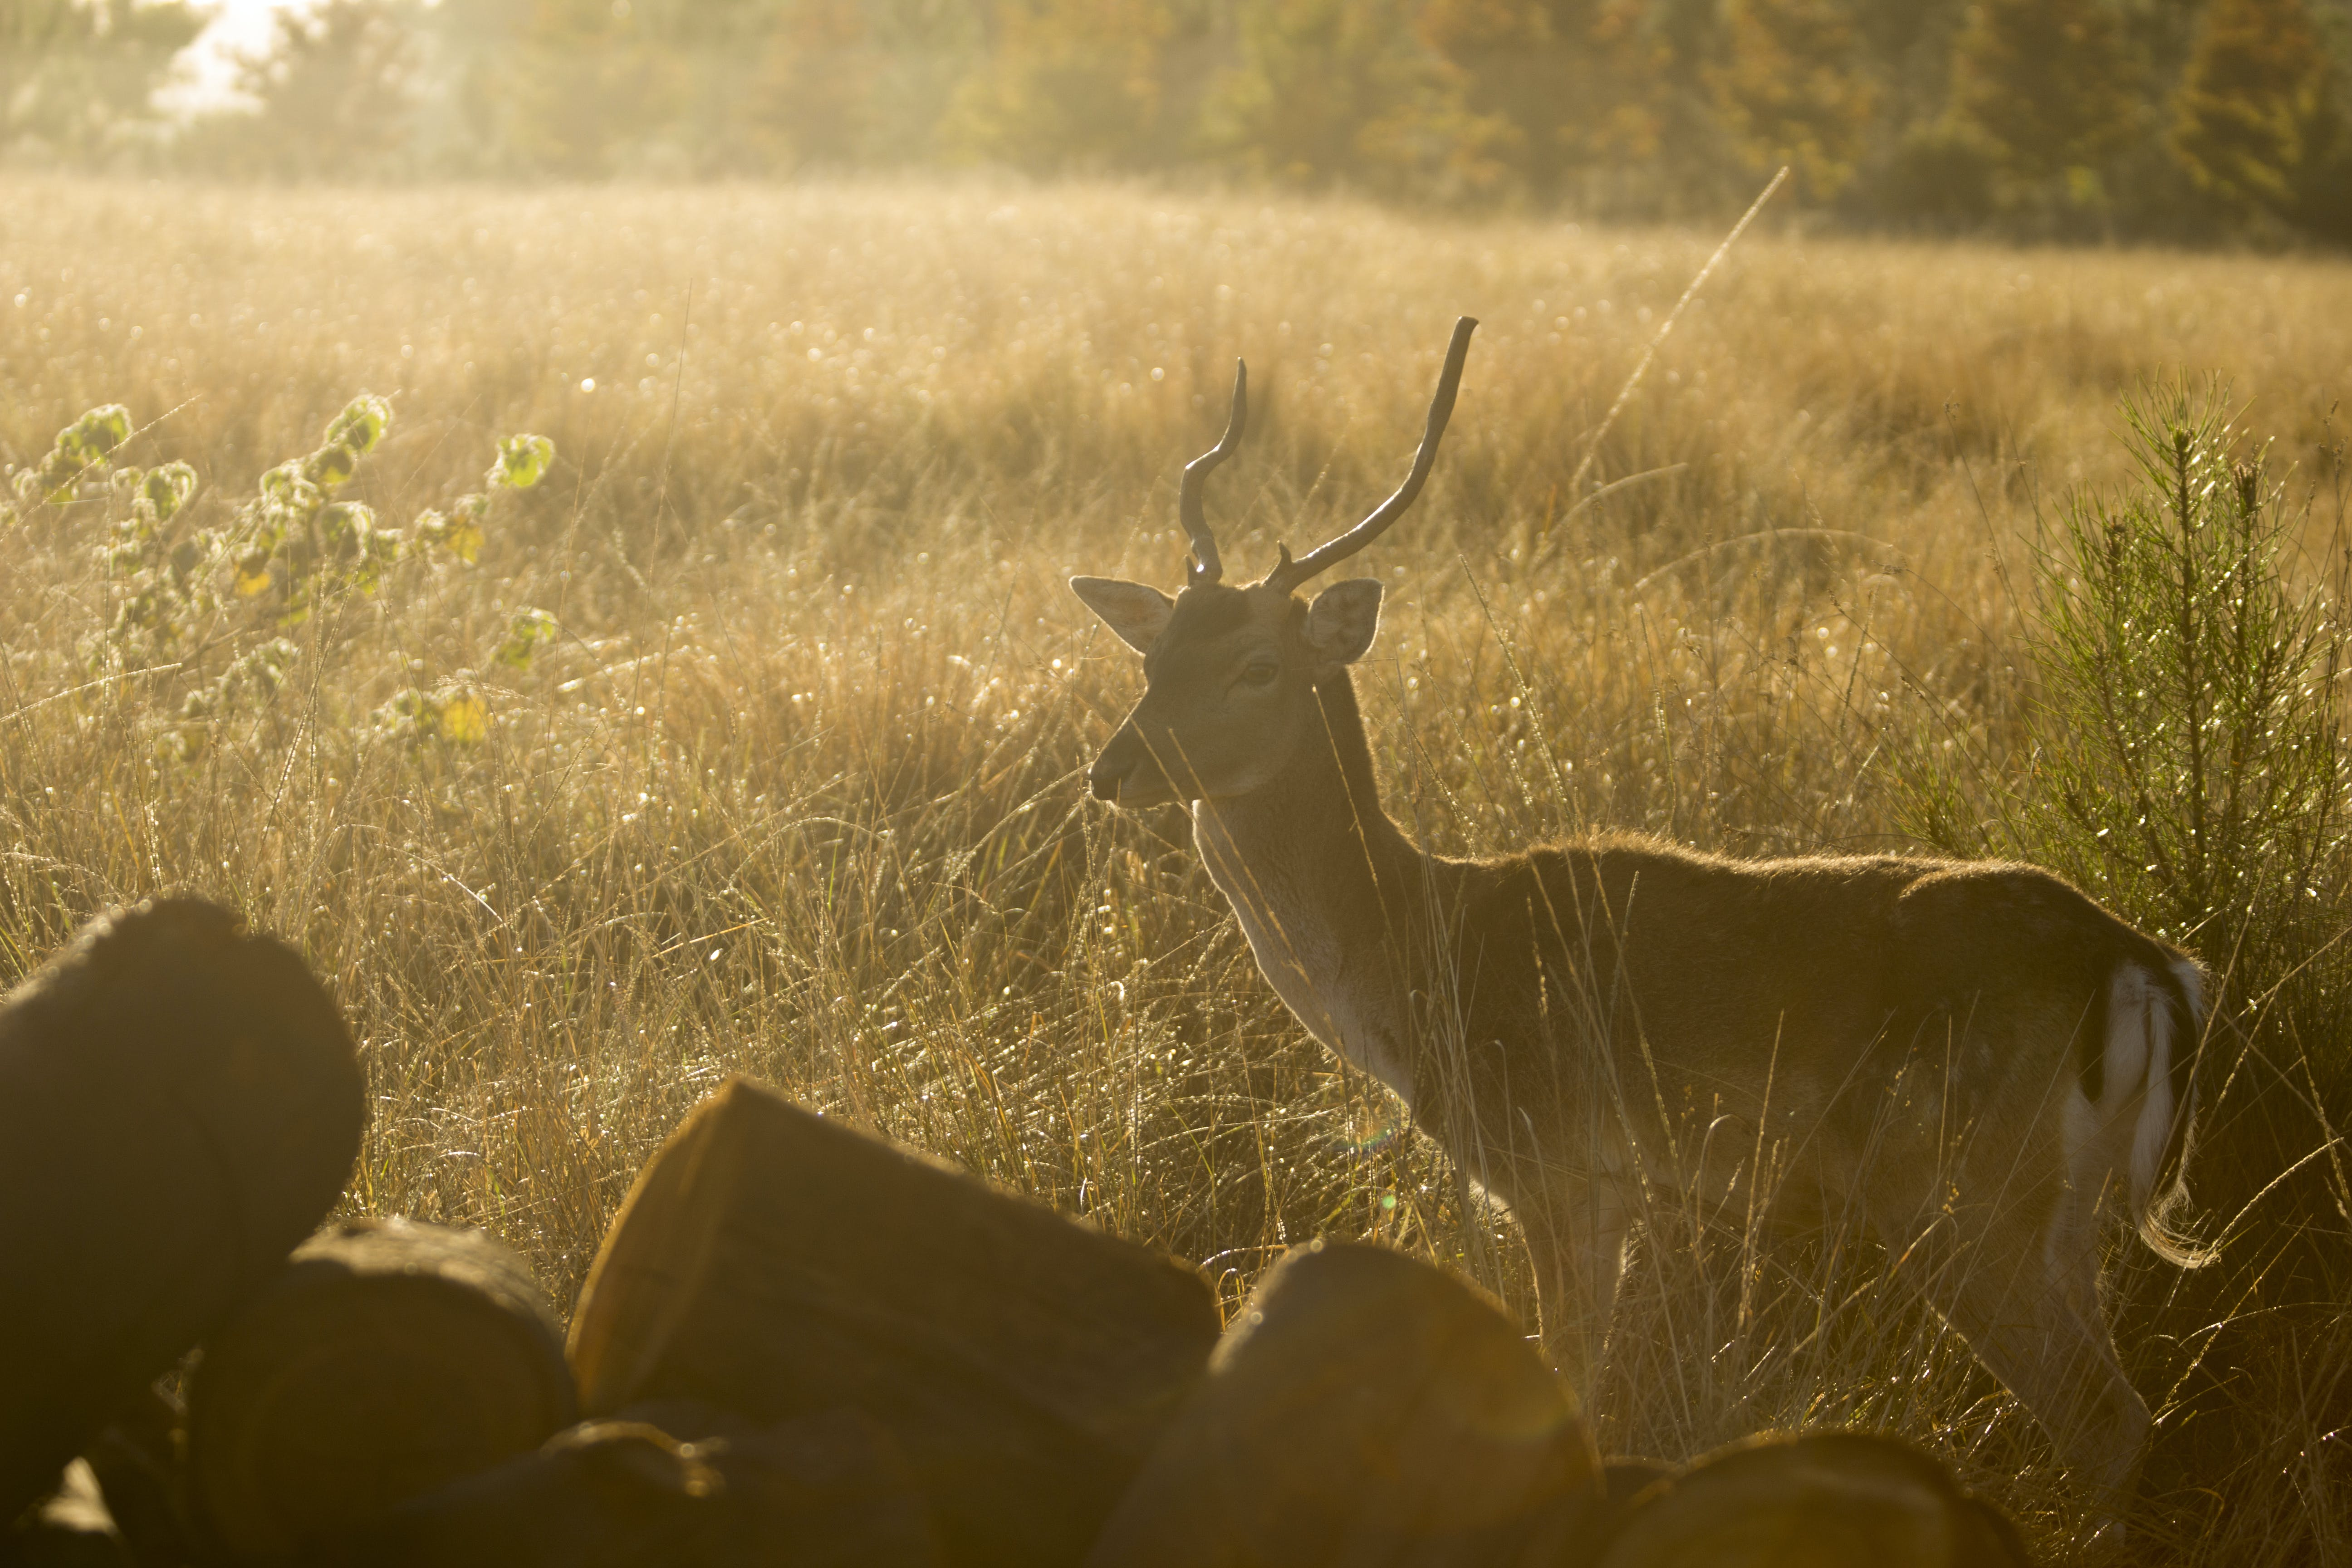 Brown Deer Surrounded by Grass during Sunset